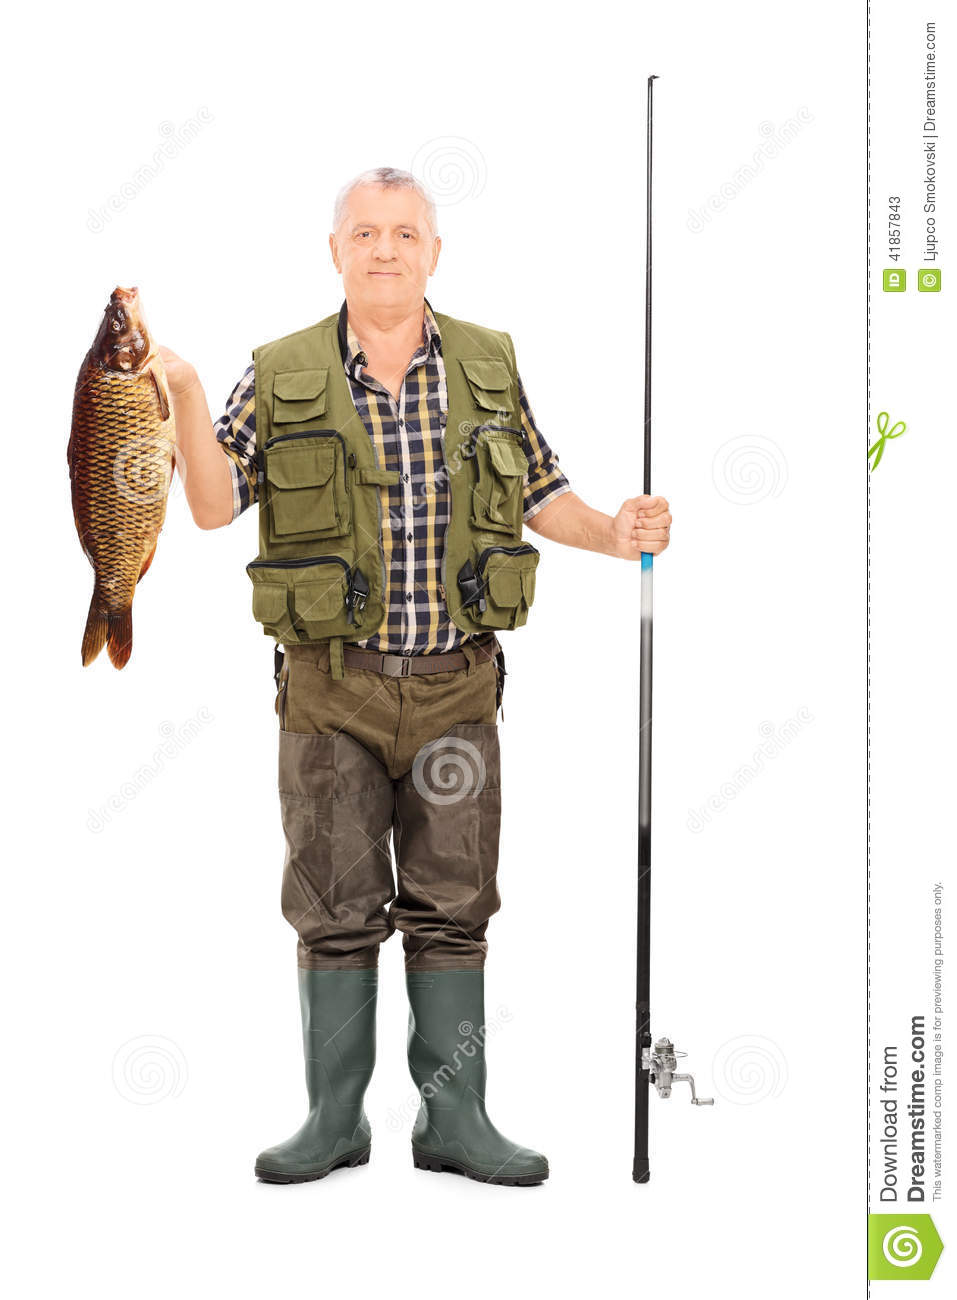 Fisherman holding a fish and a fishing rod stock photo for How many fishing rods per person in texas